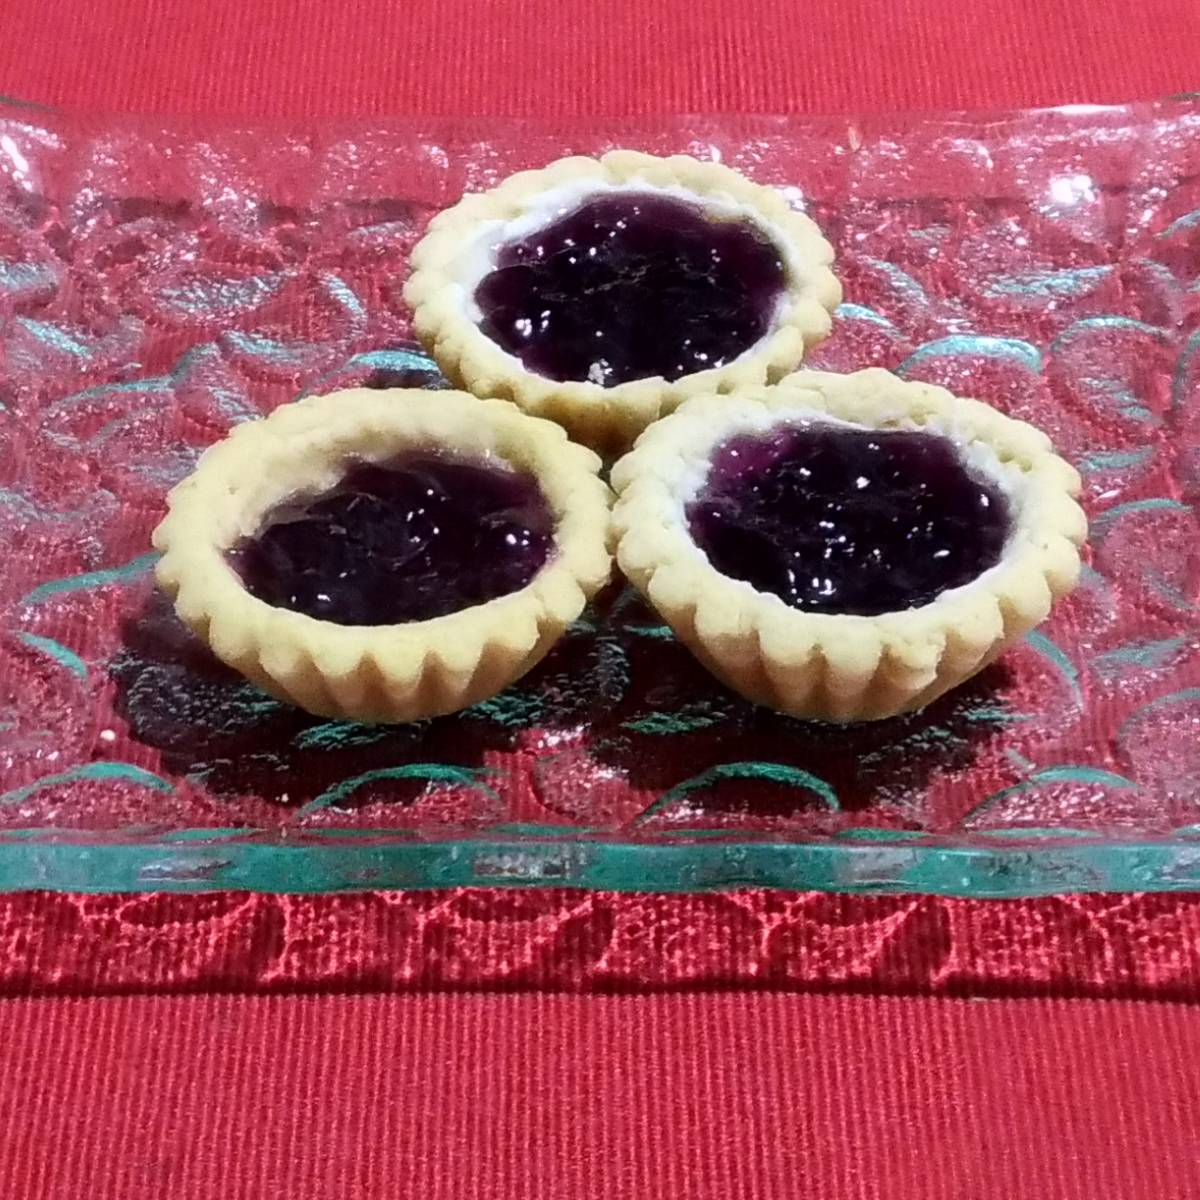 Mini Pie Blueberry Original Crust (paket 3 Pieces)